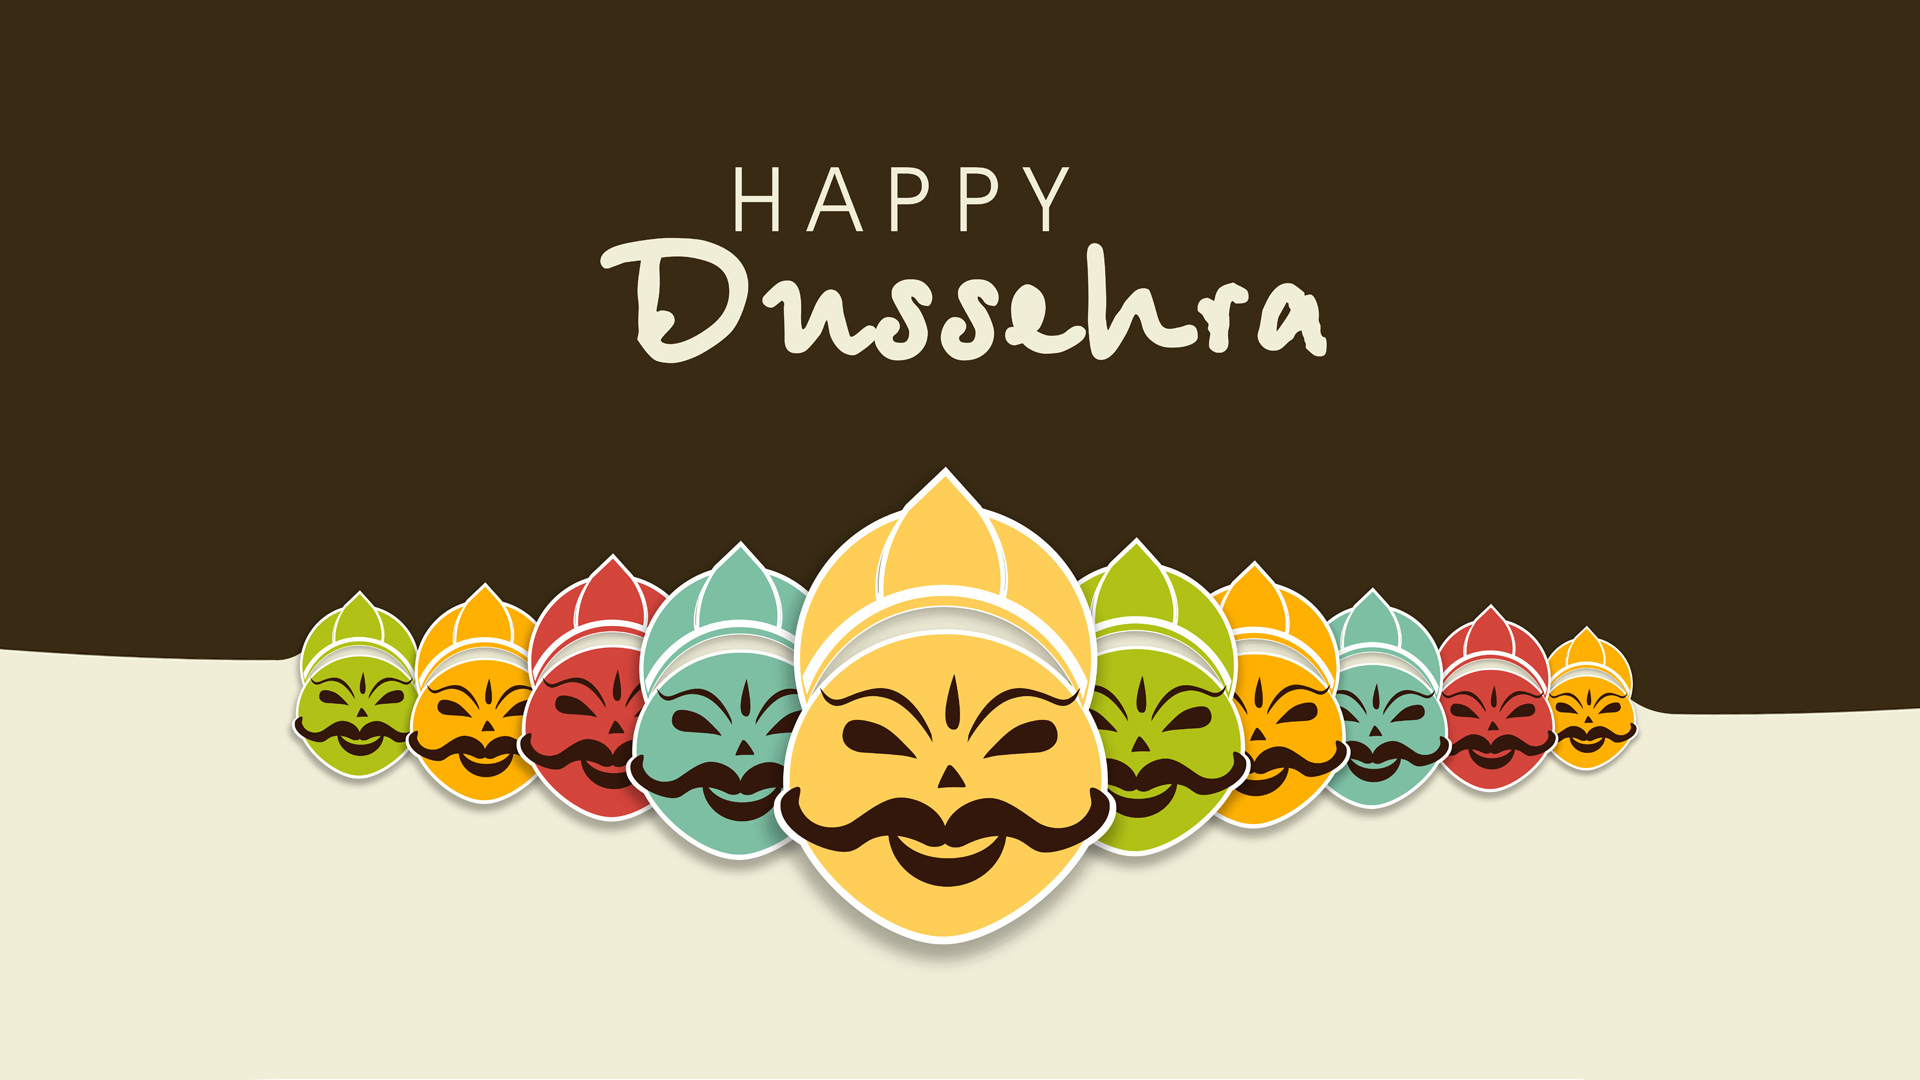 Download Free Happy Dasara 2017 Images